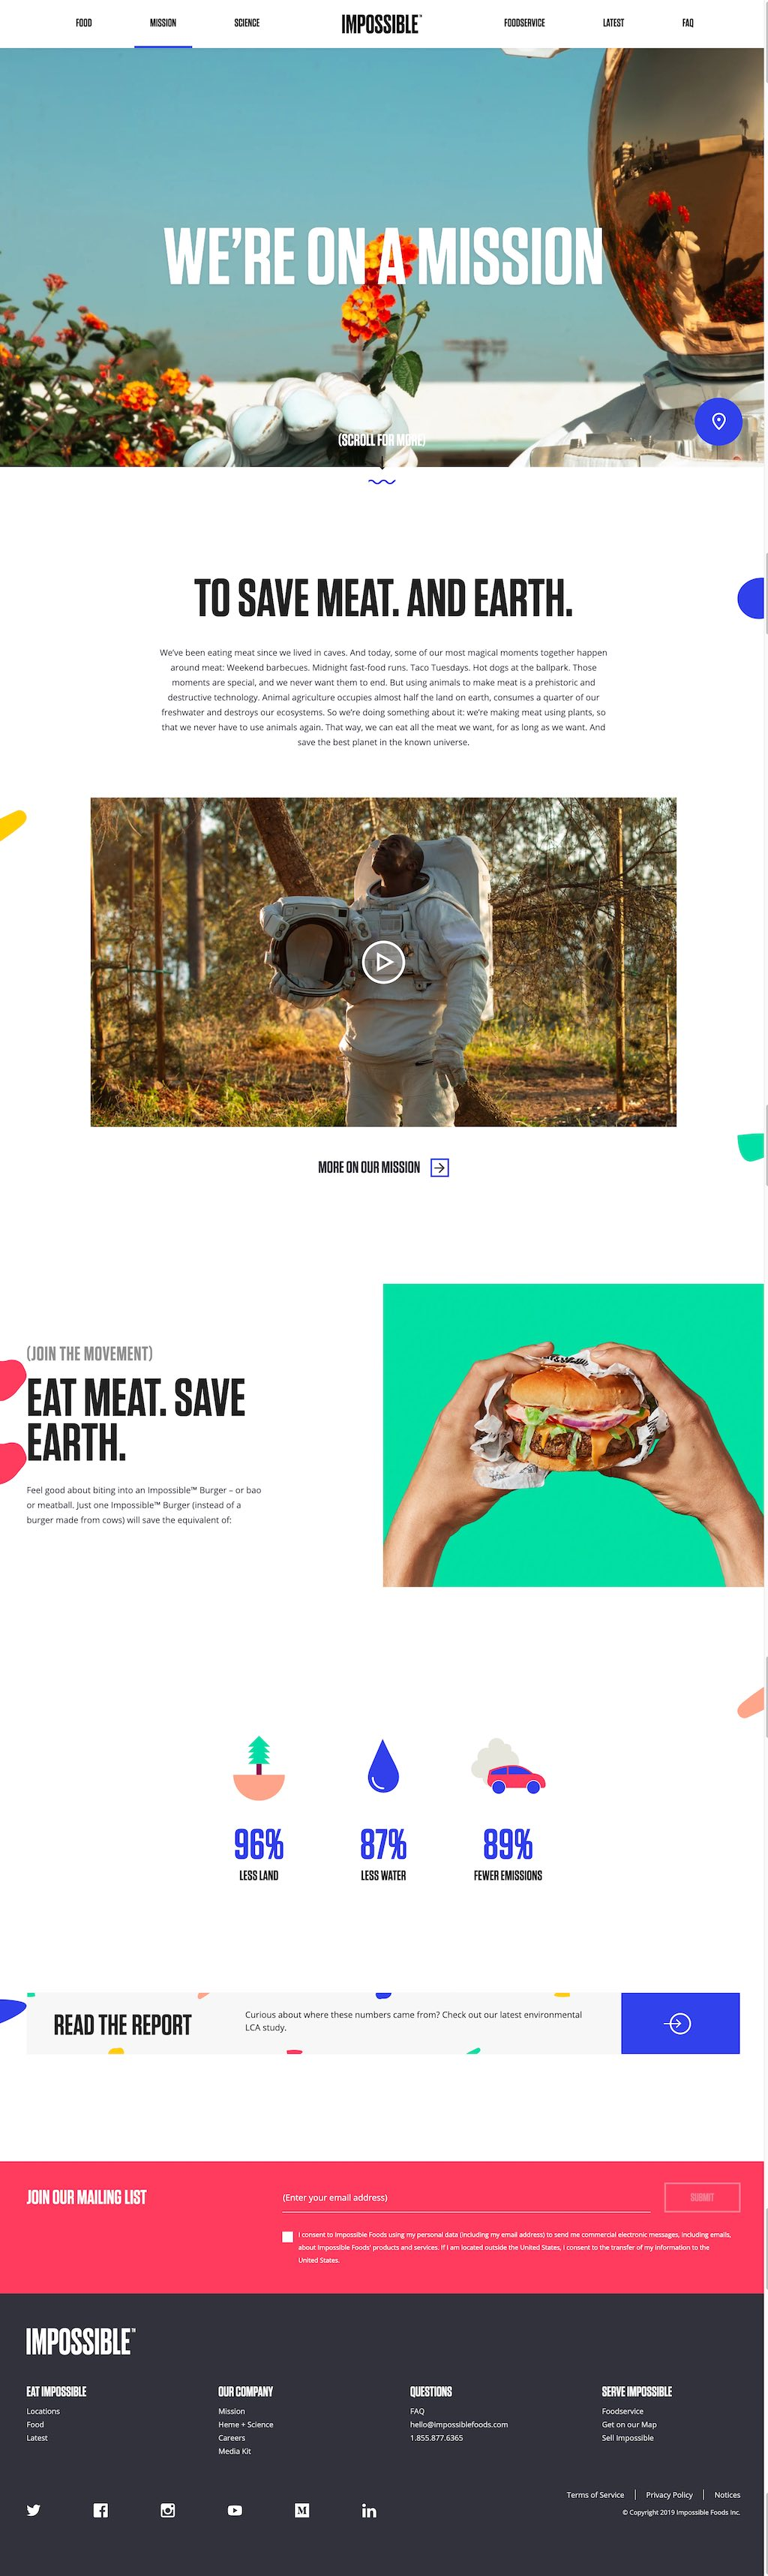 Impossible Foods Website Design